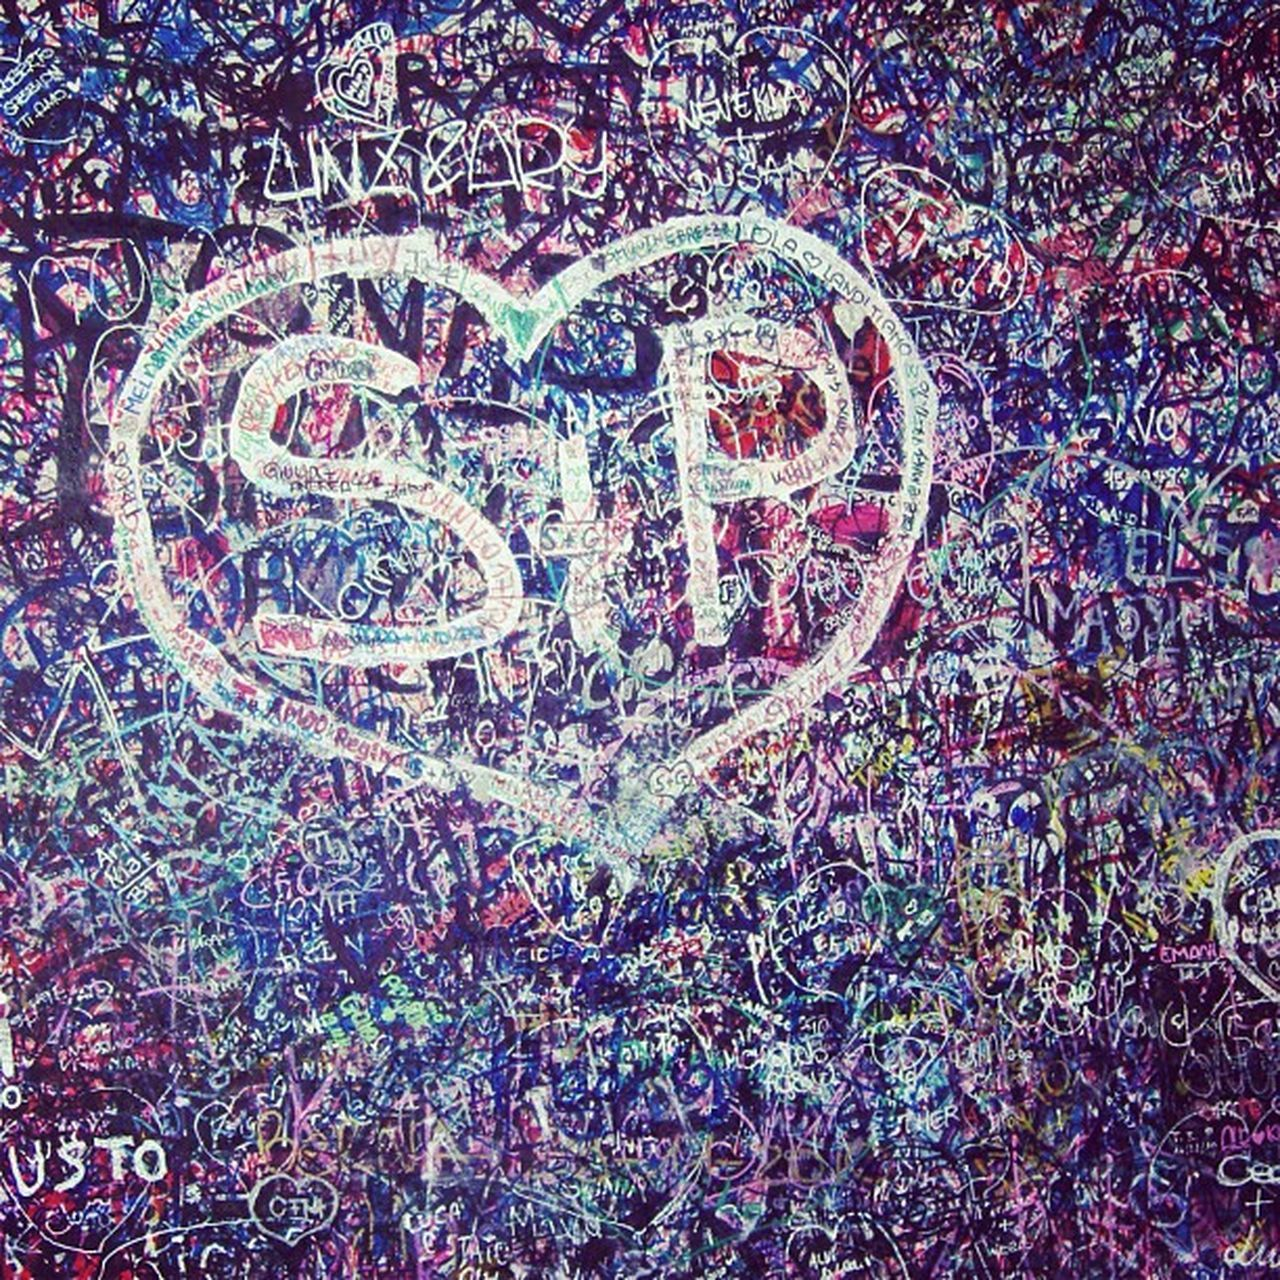 Verona, il muro dell'amore. 2010 Love Instagood Tweegram Photooftheday Instagramtagsdotcom Instamood Cute Iphonesia TBT  Summer Igers Picoftheday Girl Instadaily Instagramhub Beautiful Iphoneonly Bestoftheday IGDaily Jj  Instatags Picstitch  Sky Follow Nofilter happy fashion sun fun instagramers